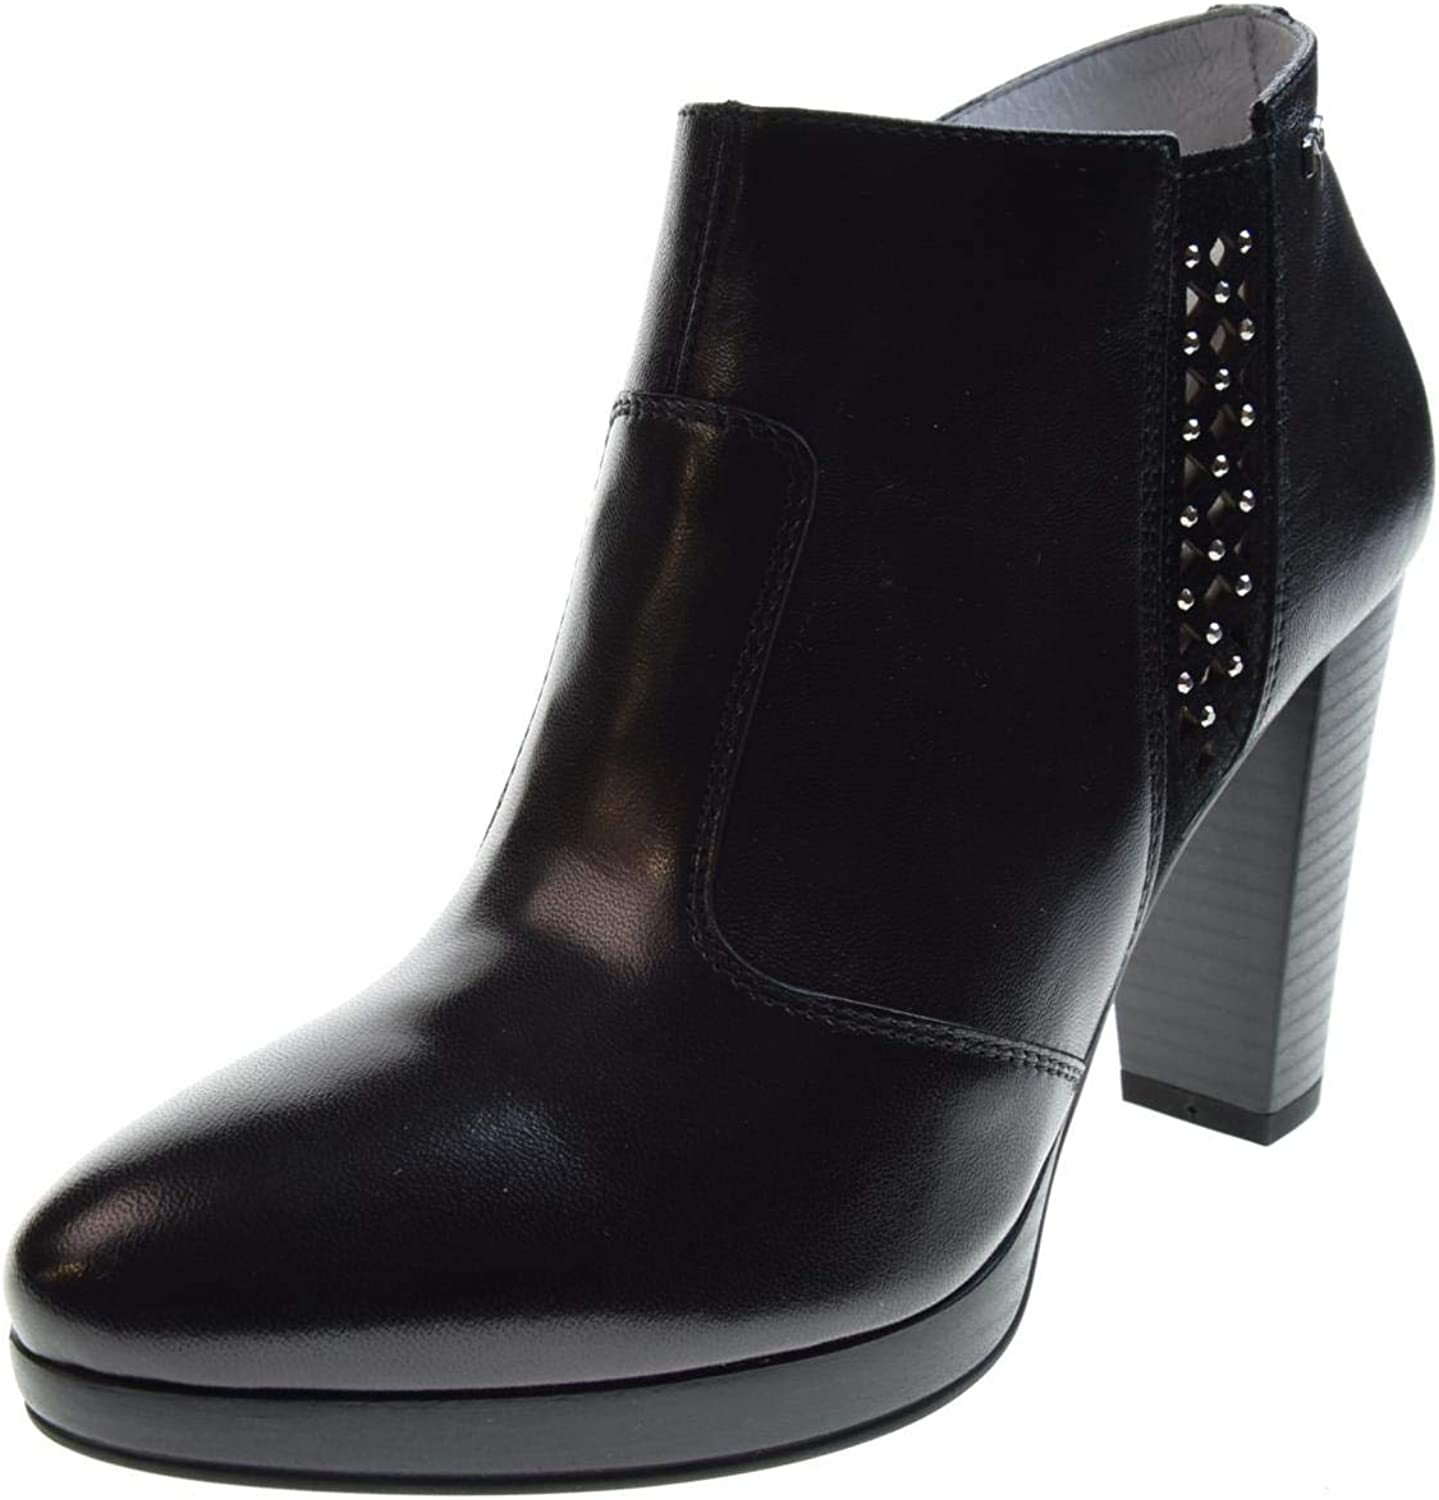 black GIARDINI women's shoes ankle boots with heel P907401D   100 size 37 Black